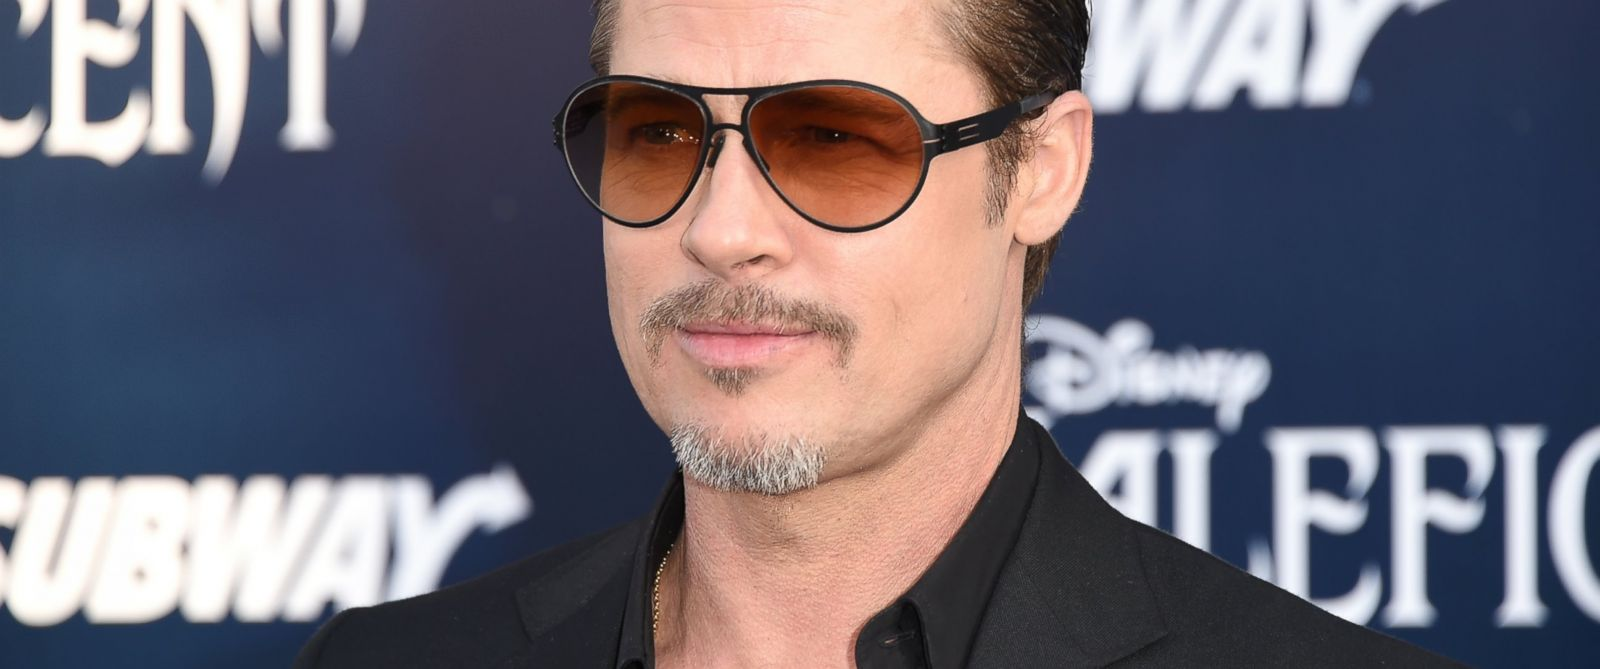 PHOTO: Actor Brad Pitt attends the World Premiere of Disneys Maleficent at the El Capitan Theatre, May 28, 2014, in Hollywood, Calif.